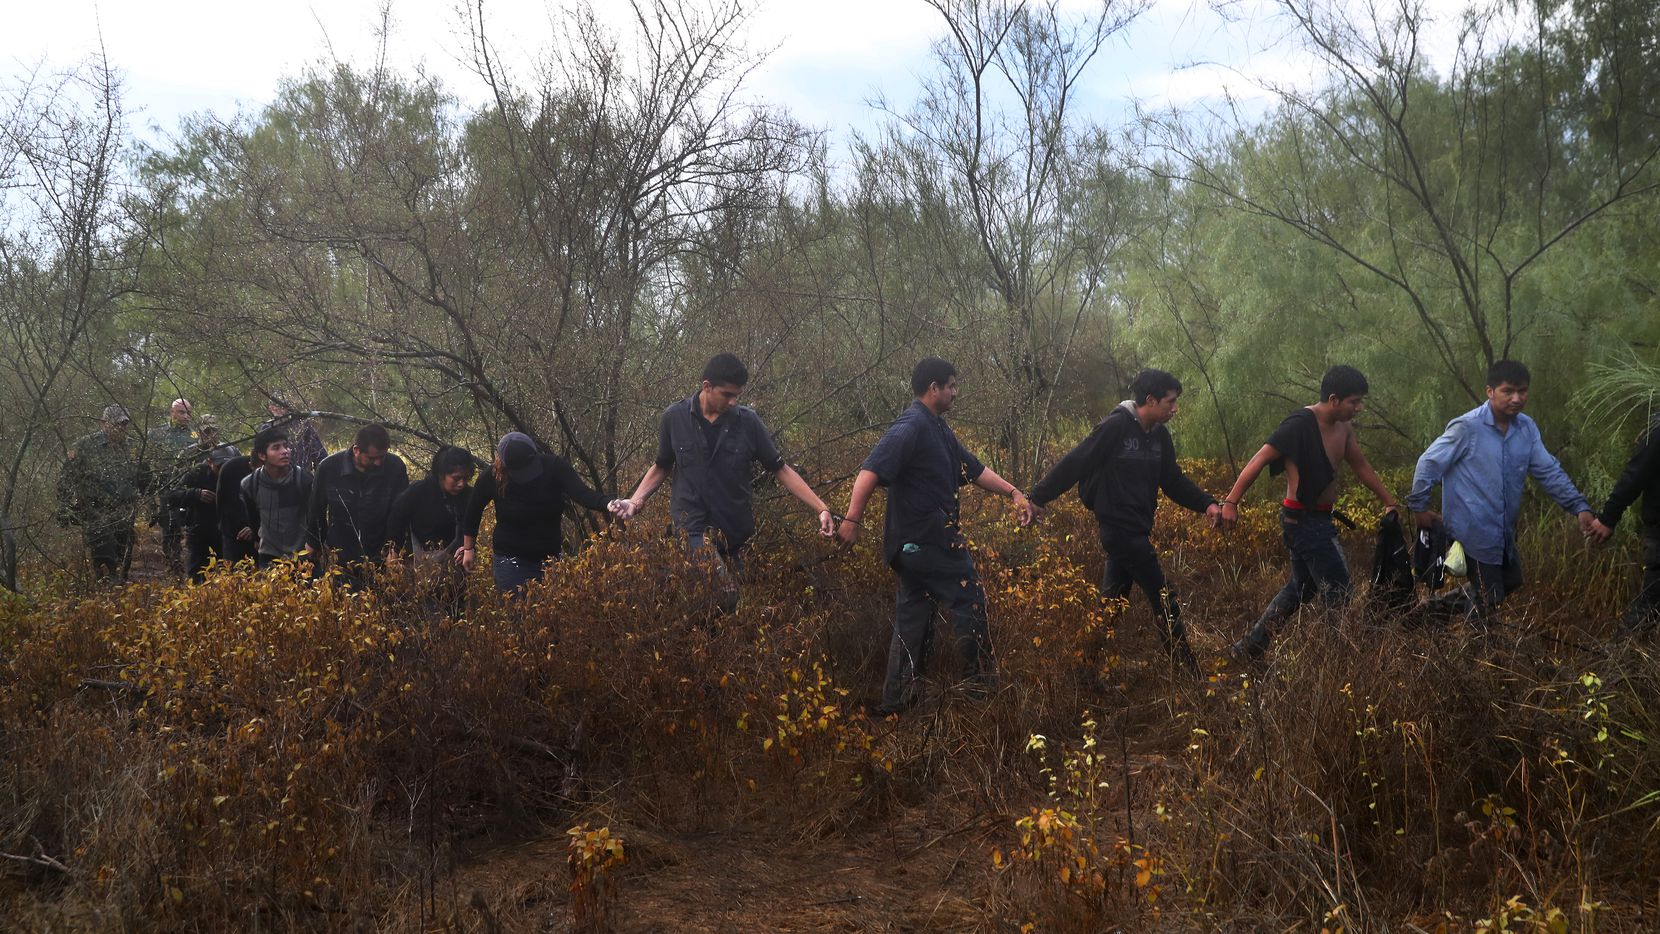 Detained  immigrants were led through the brush after being captured by U.S. Border Patrol agents recently in Roma, Texas. (John Moore/Getty Images)